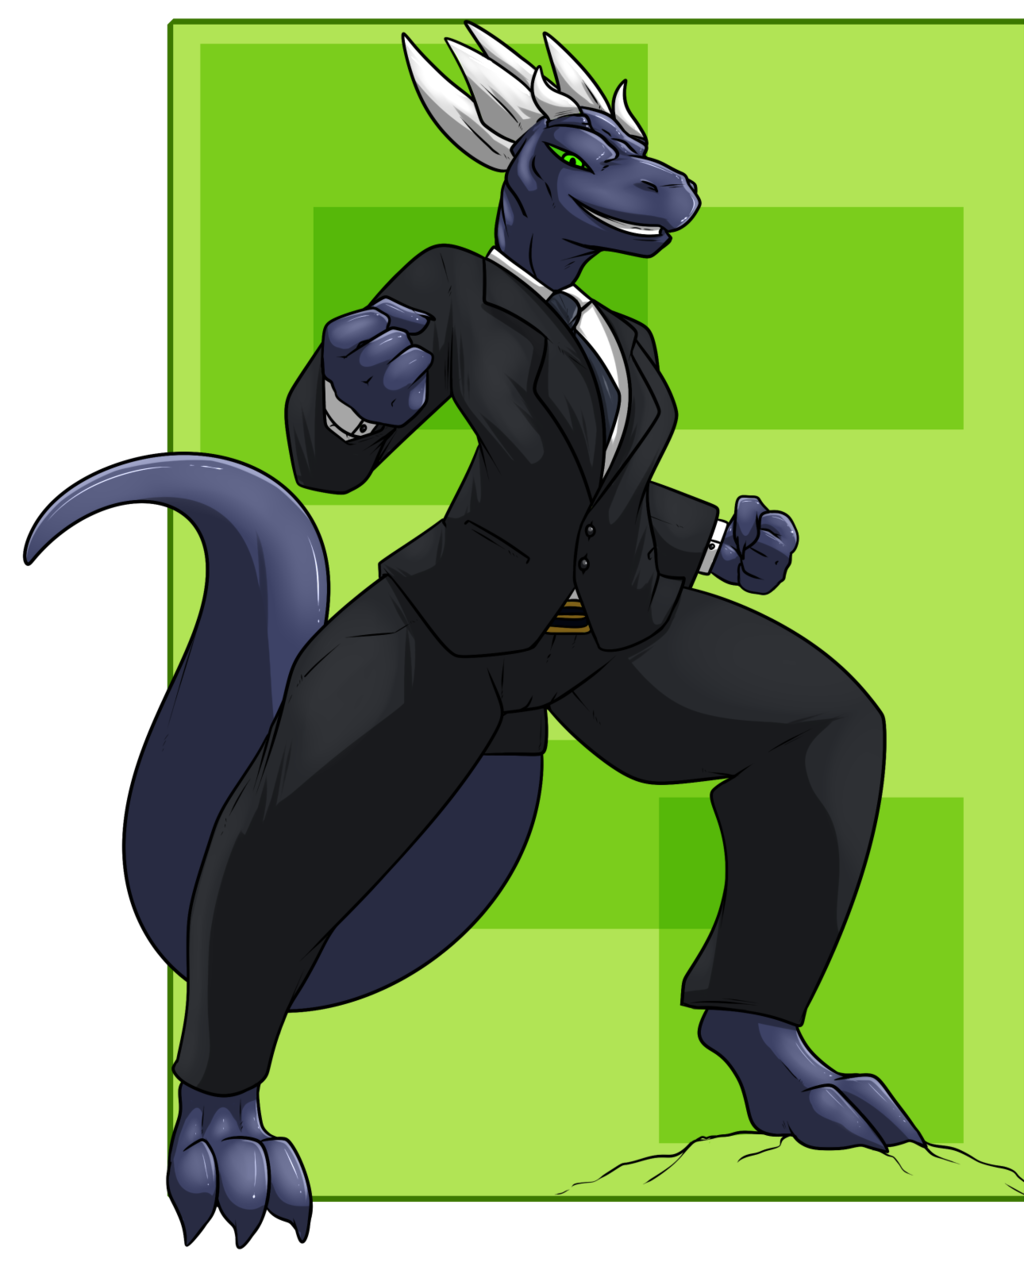 Most recent image: [Commission] Suited